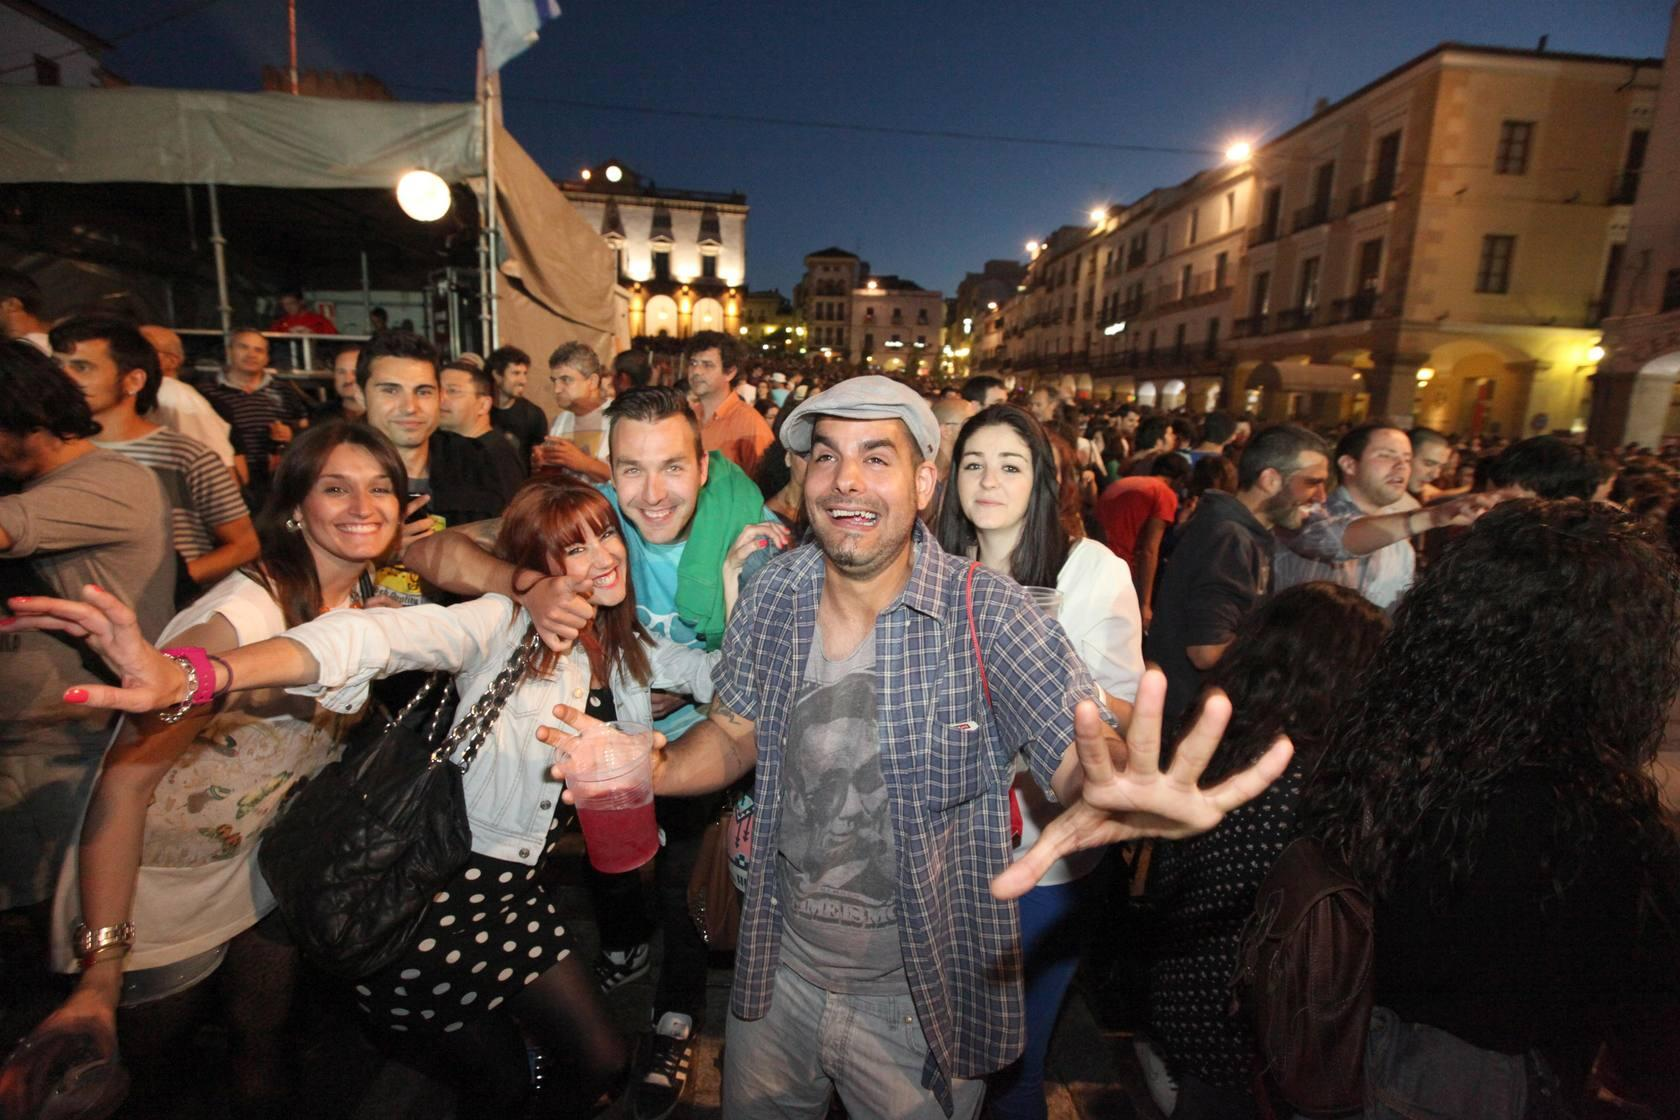 WOMAD C&Aacute;CERES | Comienzan los conciertos en la Plaza Mayor y San Jorge